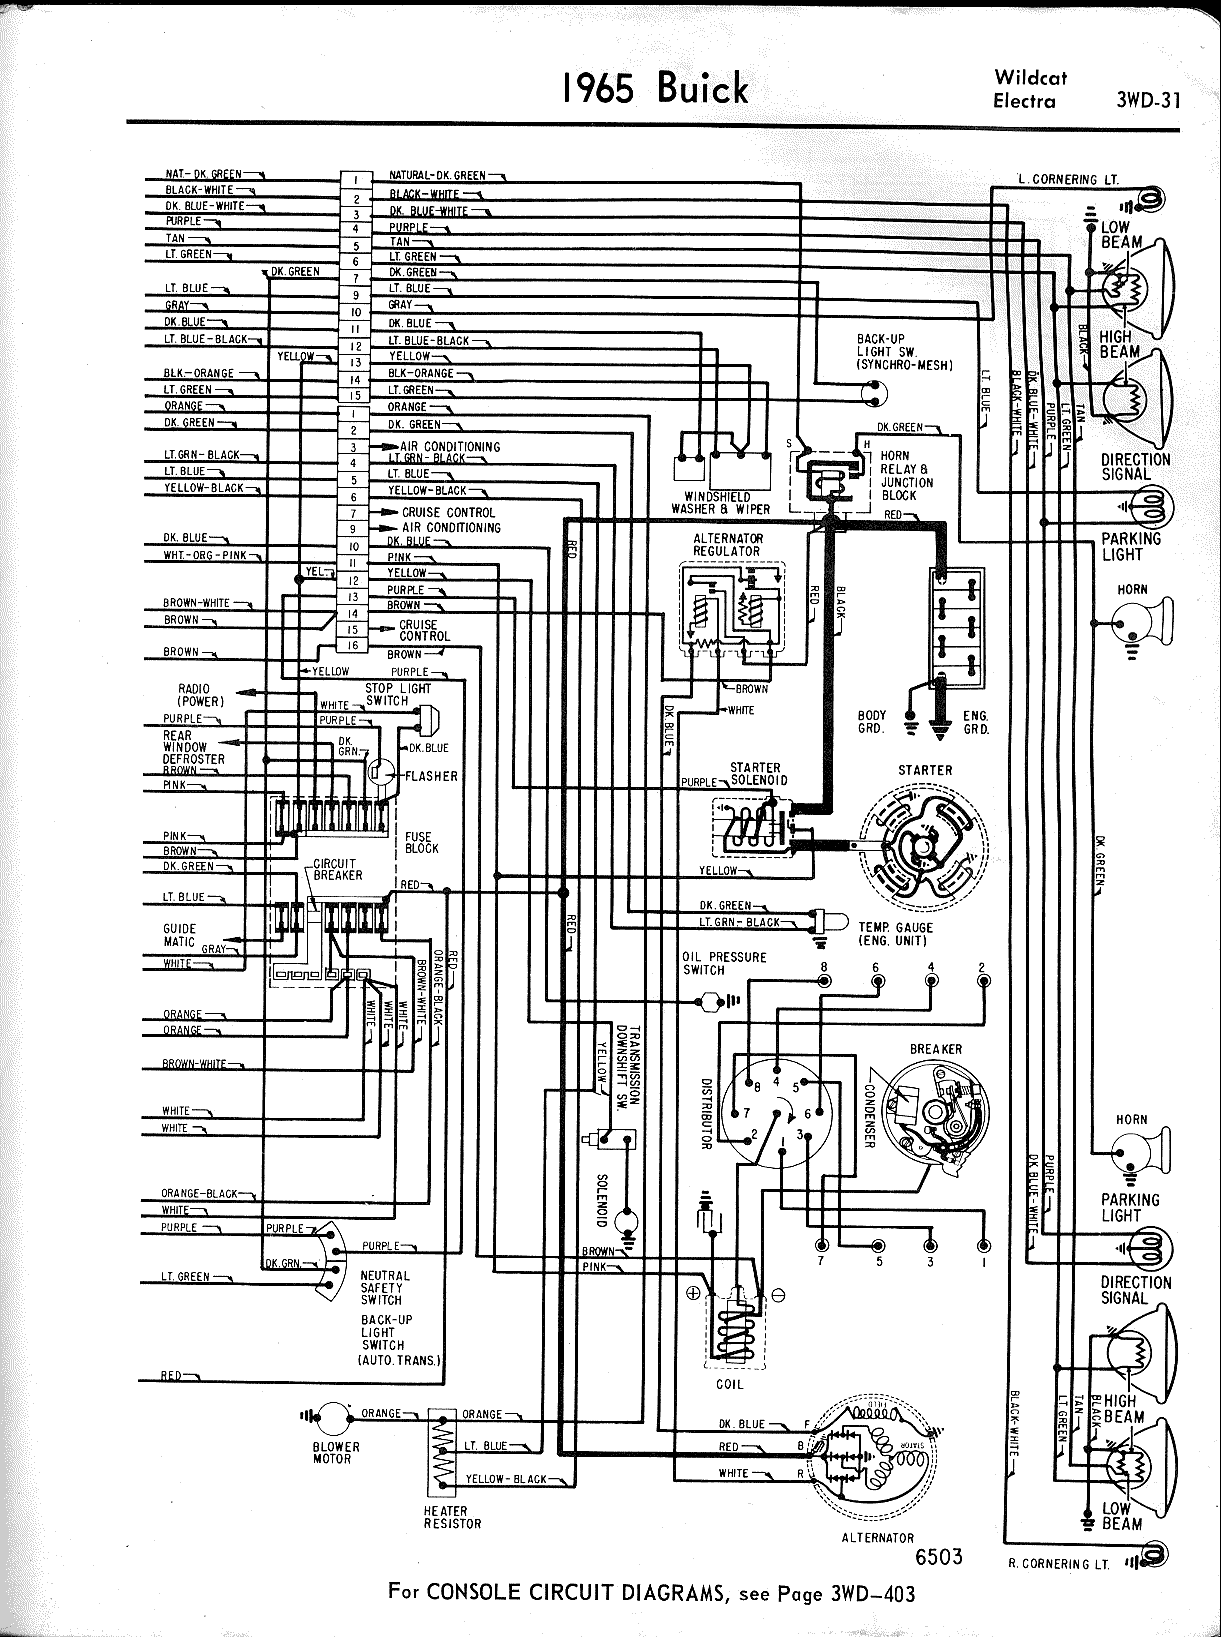 1966 Buick Riviera Wiring Diagram - Wiring Diagram Data